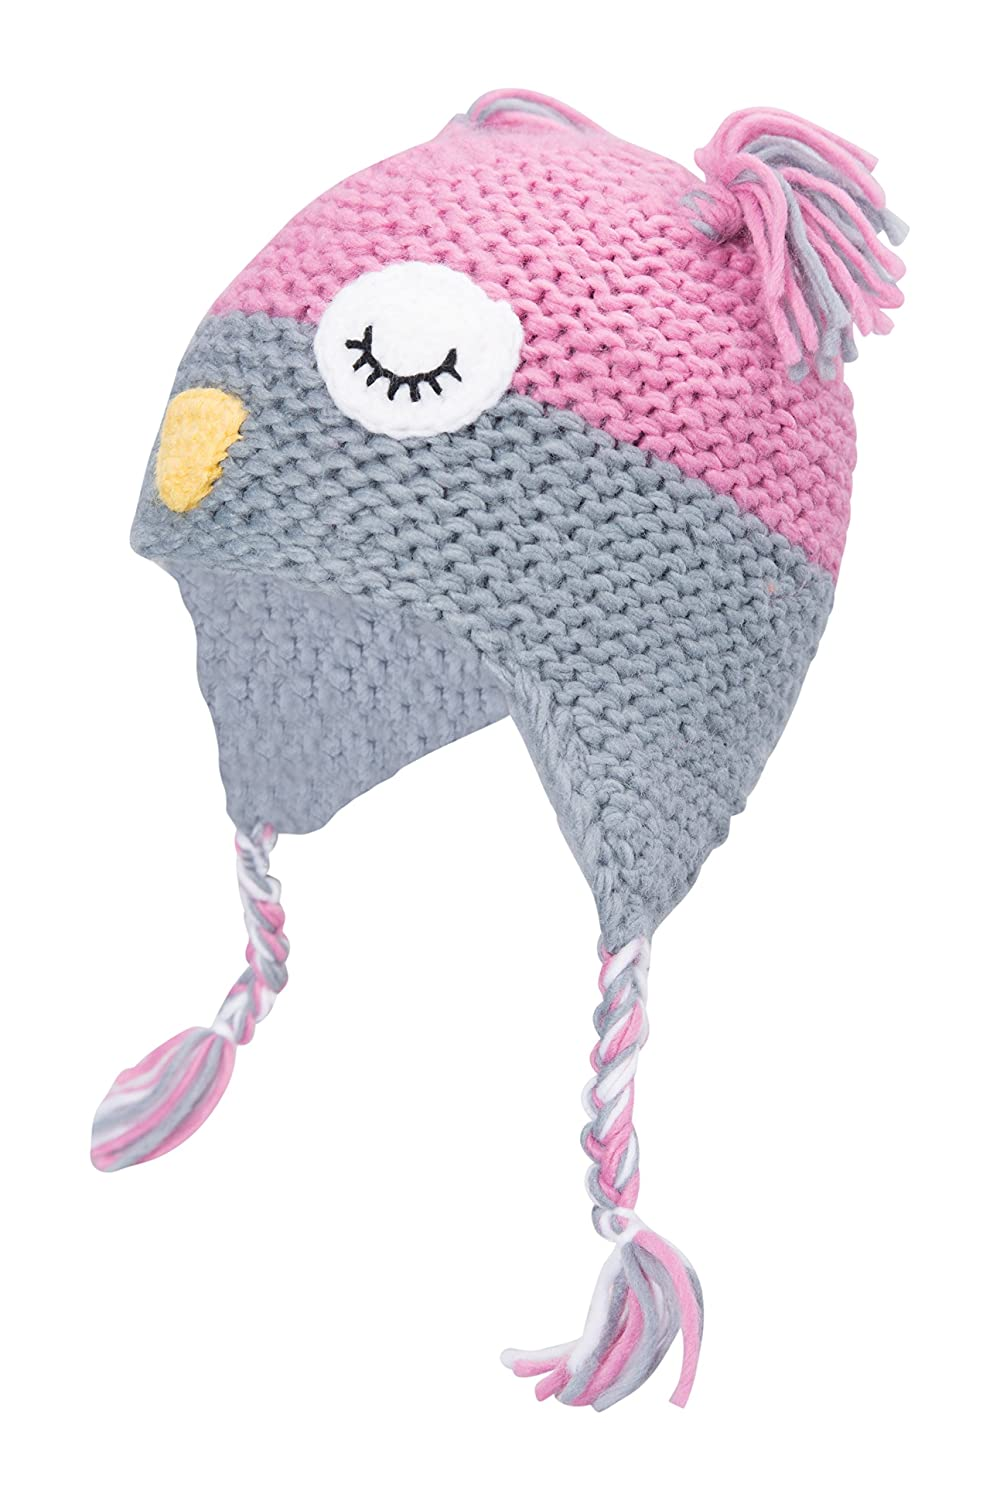 969e13aaddd Mountain Warehouse Owl Knitted Kids Hat - Easy Care    Fleece Lining -  Perfect for